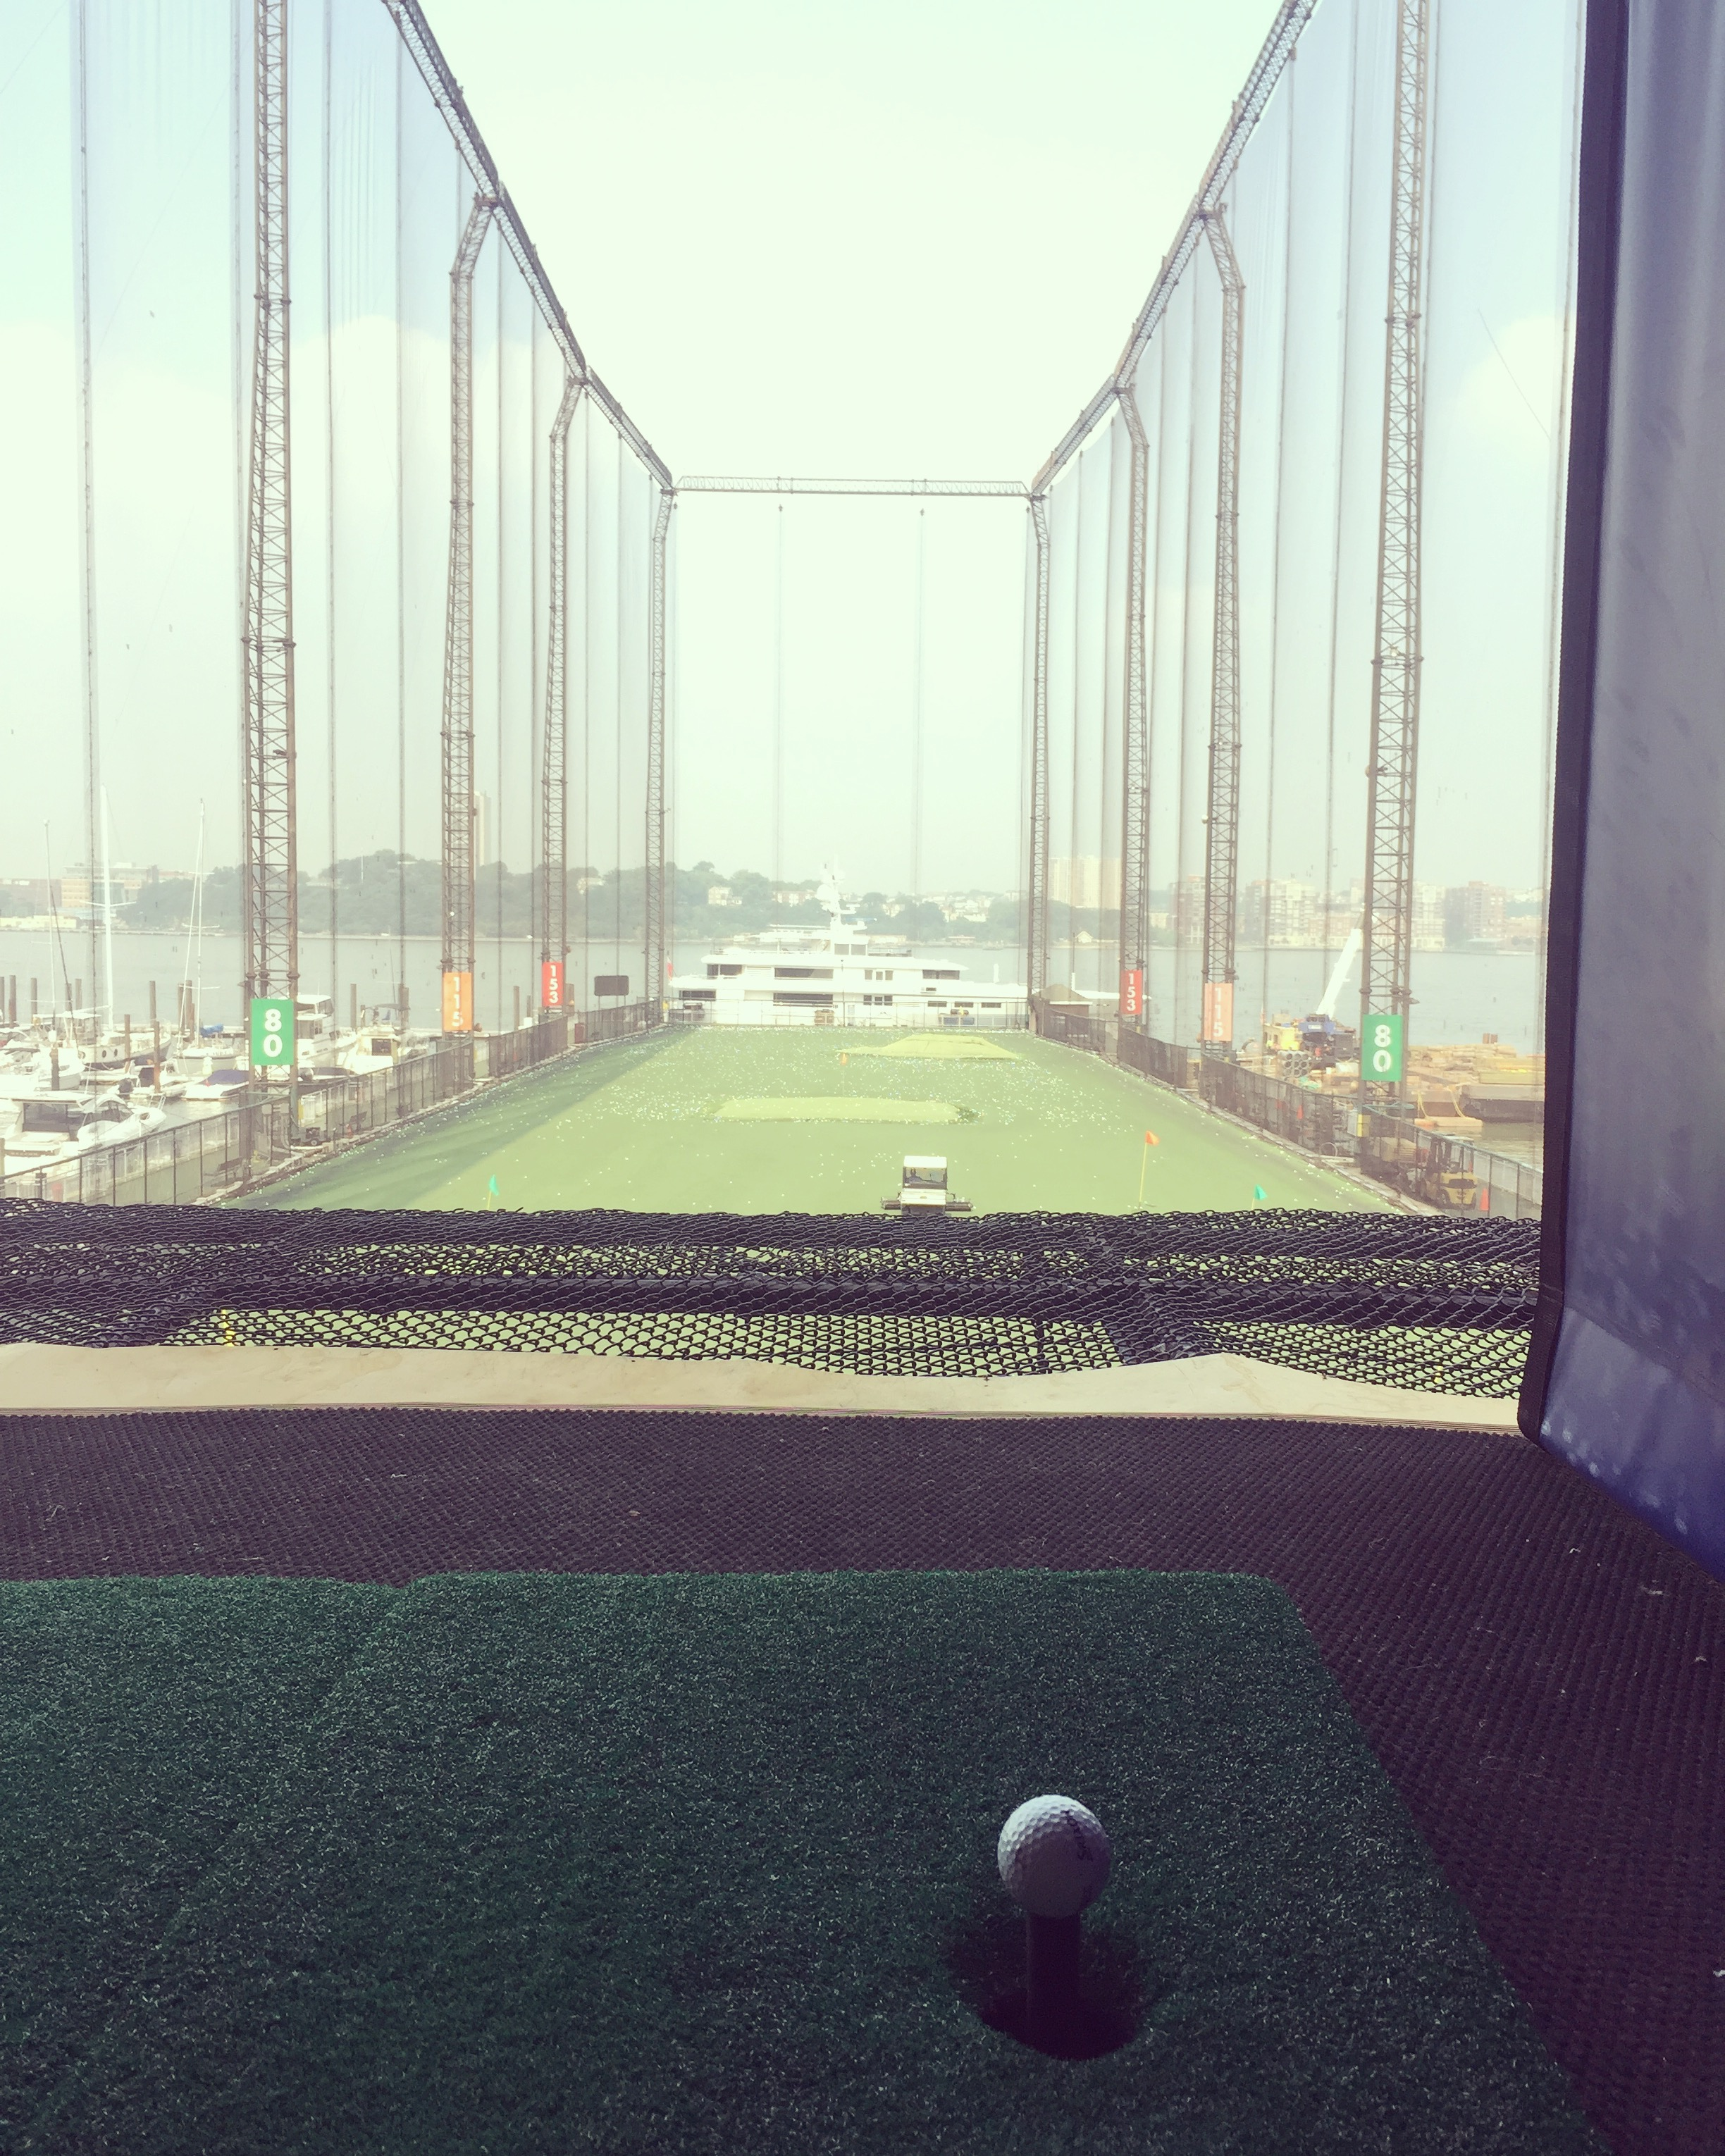 Chelsea Piers Driving Range for our Date Day